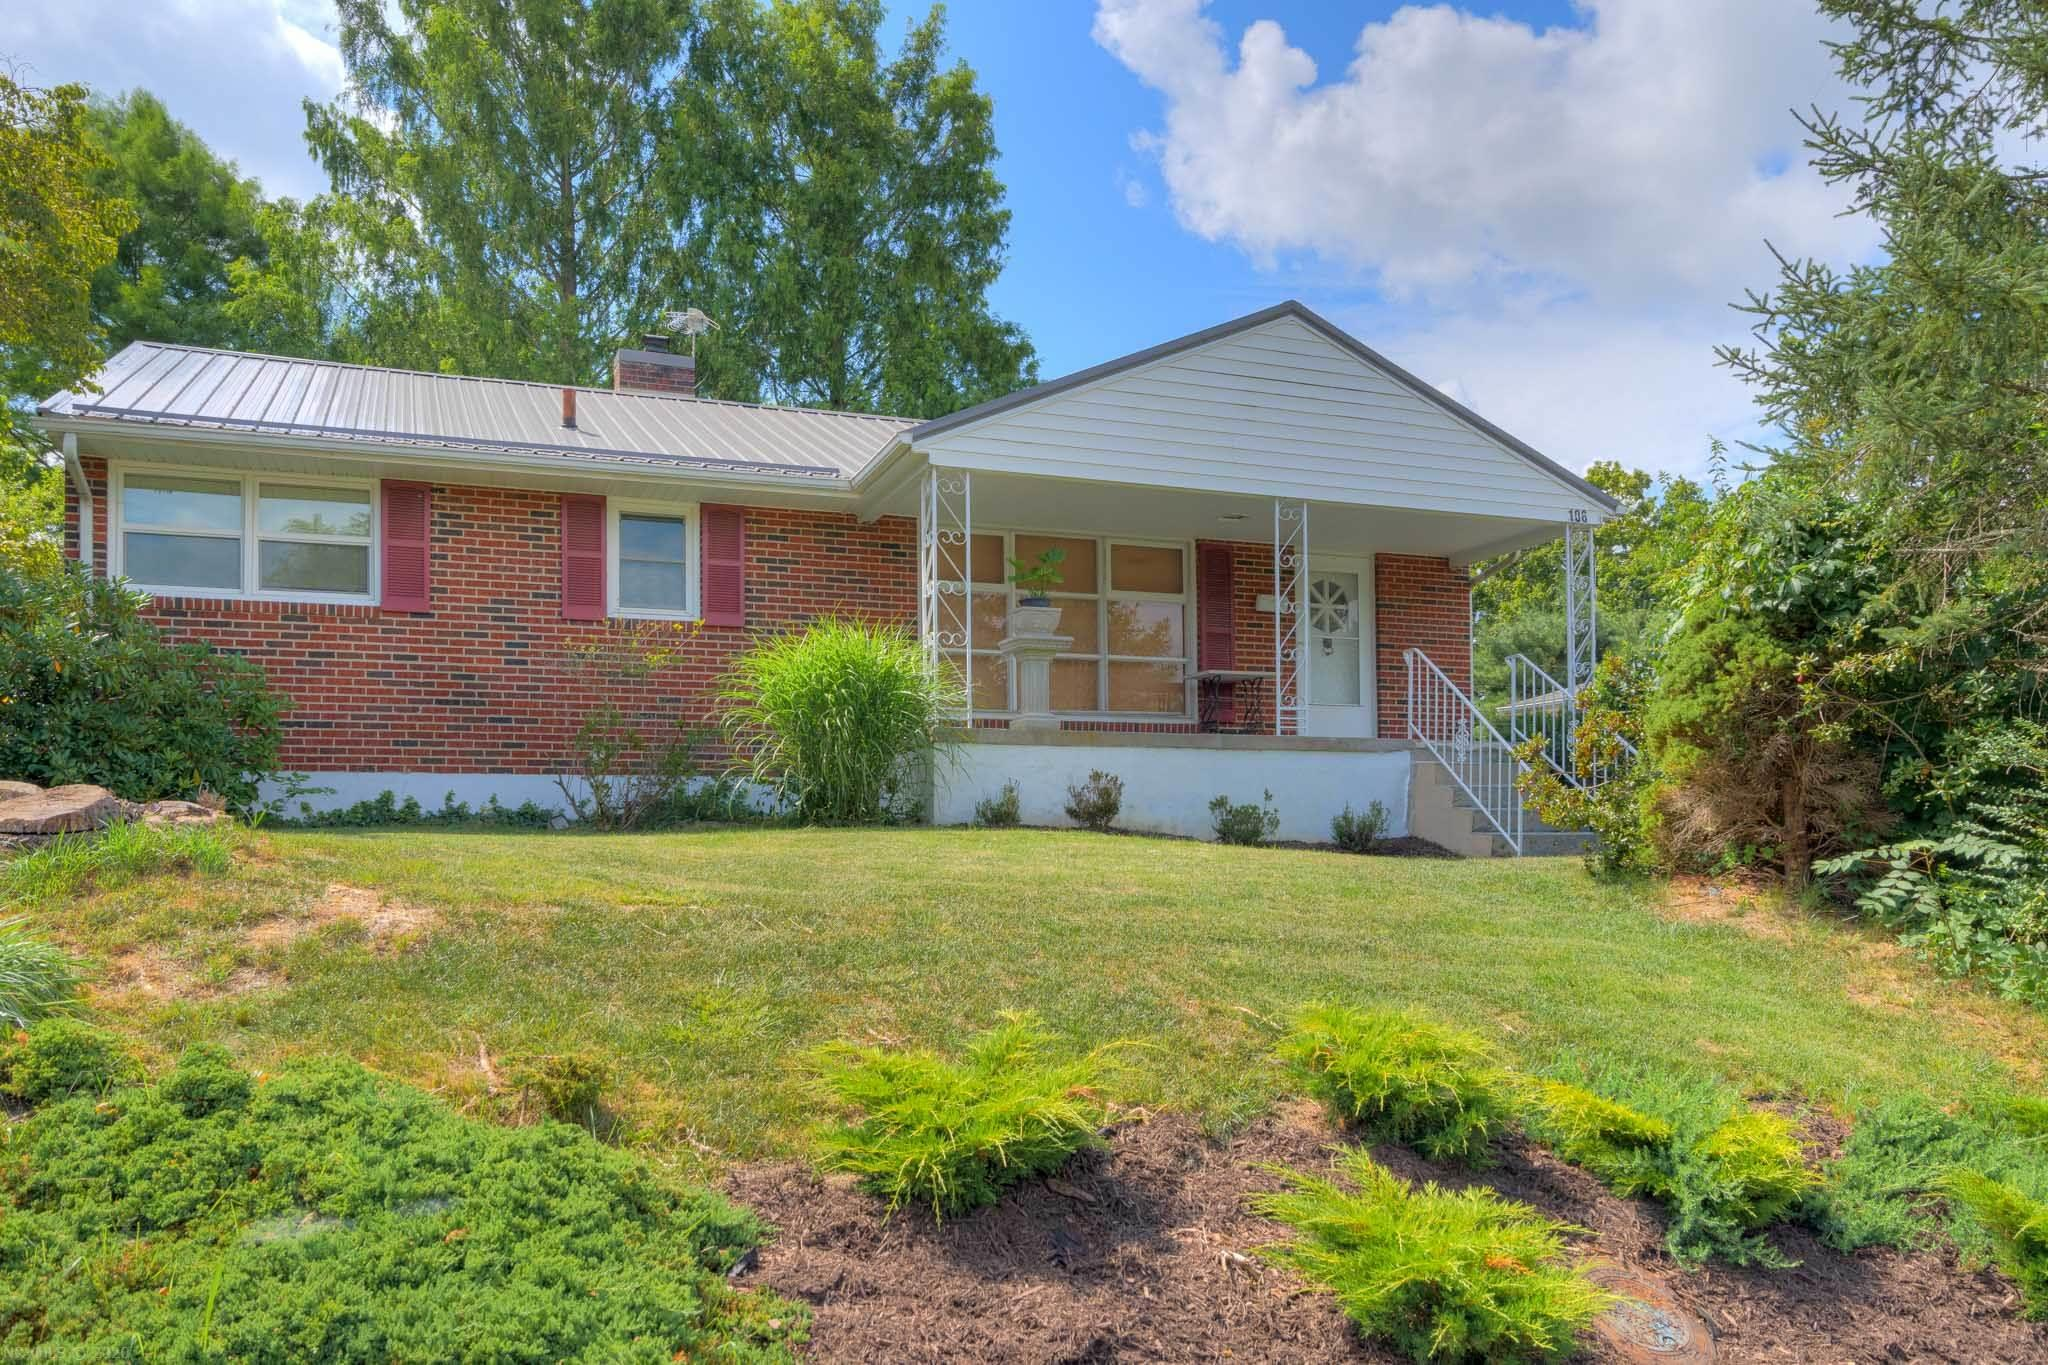 If you are looking for a solid brick ranch with two full baths look no further;  106 Arnold Avenue is just waiting for you to arrive. Nestled in a popular Radford VA neighborhood amid mature trees with a full basement and fenced yard this charmer has so much potential. A large living area with gleaming oak floors and picture window views is sure to impress. Fantastic kitchen space offers an abundance of cabinet and counter space. Three generously sized bedrooms and a full bath complete the main level. The basement has a full bath, large laundry room with sink and plenty of room for recreation or media area. Relax on the deck and enjoy the peacefulness of the shaded backyard. Two storage buildings to keep your outside toys and equipment out of the elements. Most windows have been replaced, new roof 2020, new sewer line 2019. Hurry, this one wont last long!